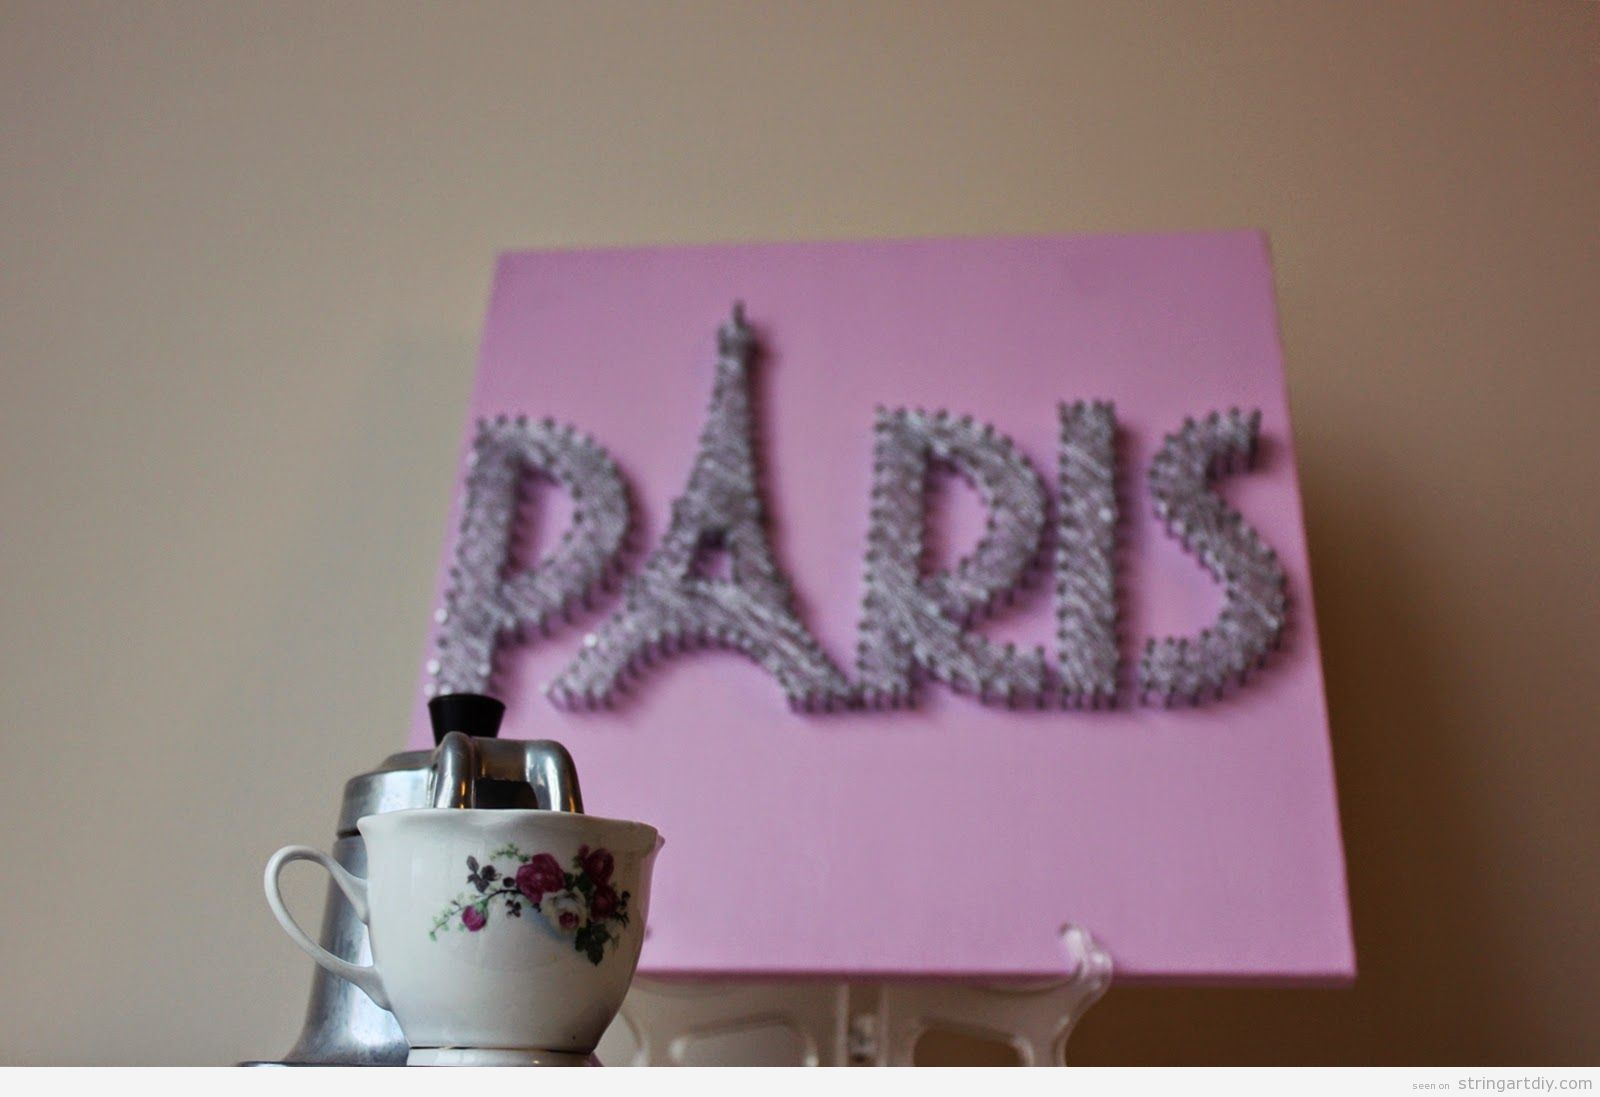 Paris Wall String Art DIY ideas